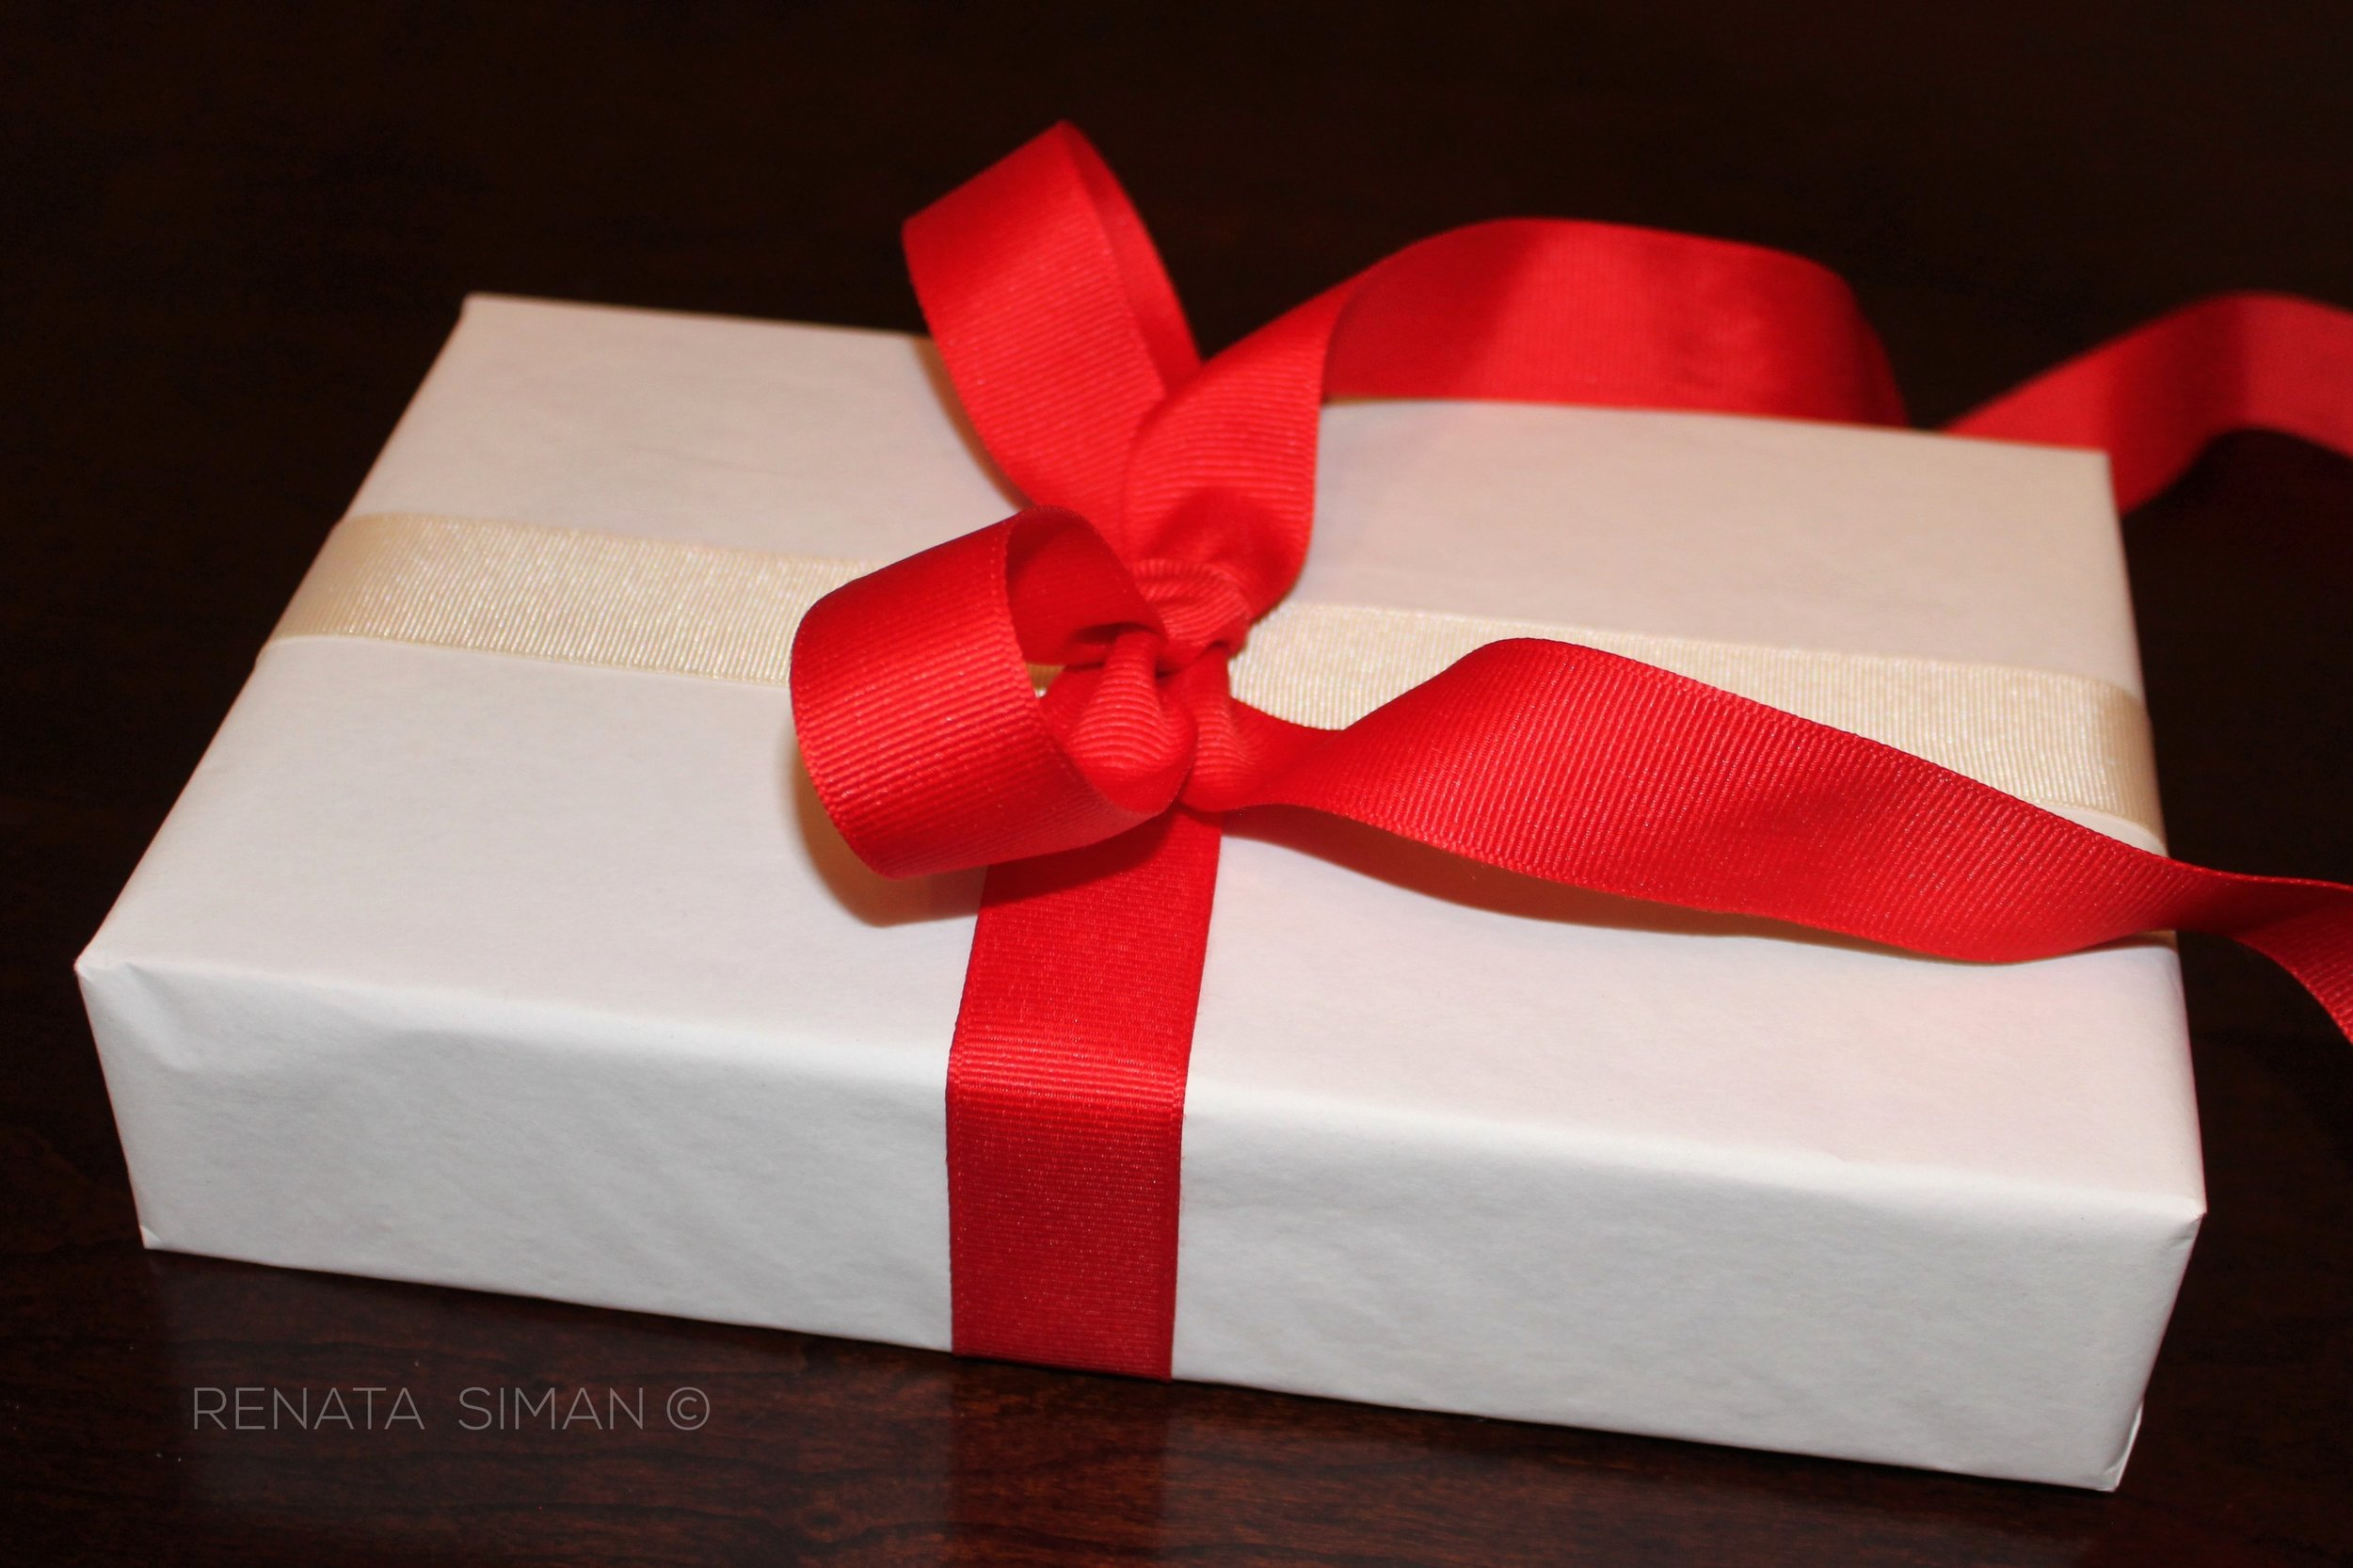 You have a gift. Unwrap your gift wrapping skills - time to show off your talent!